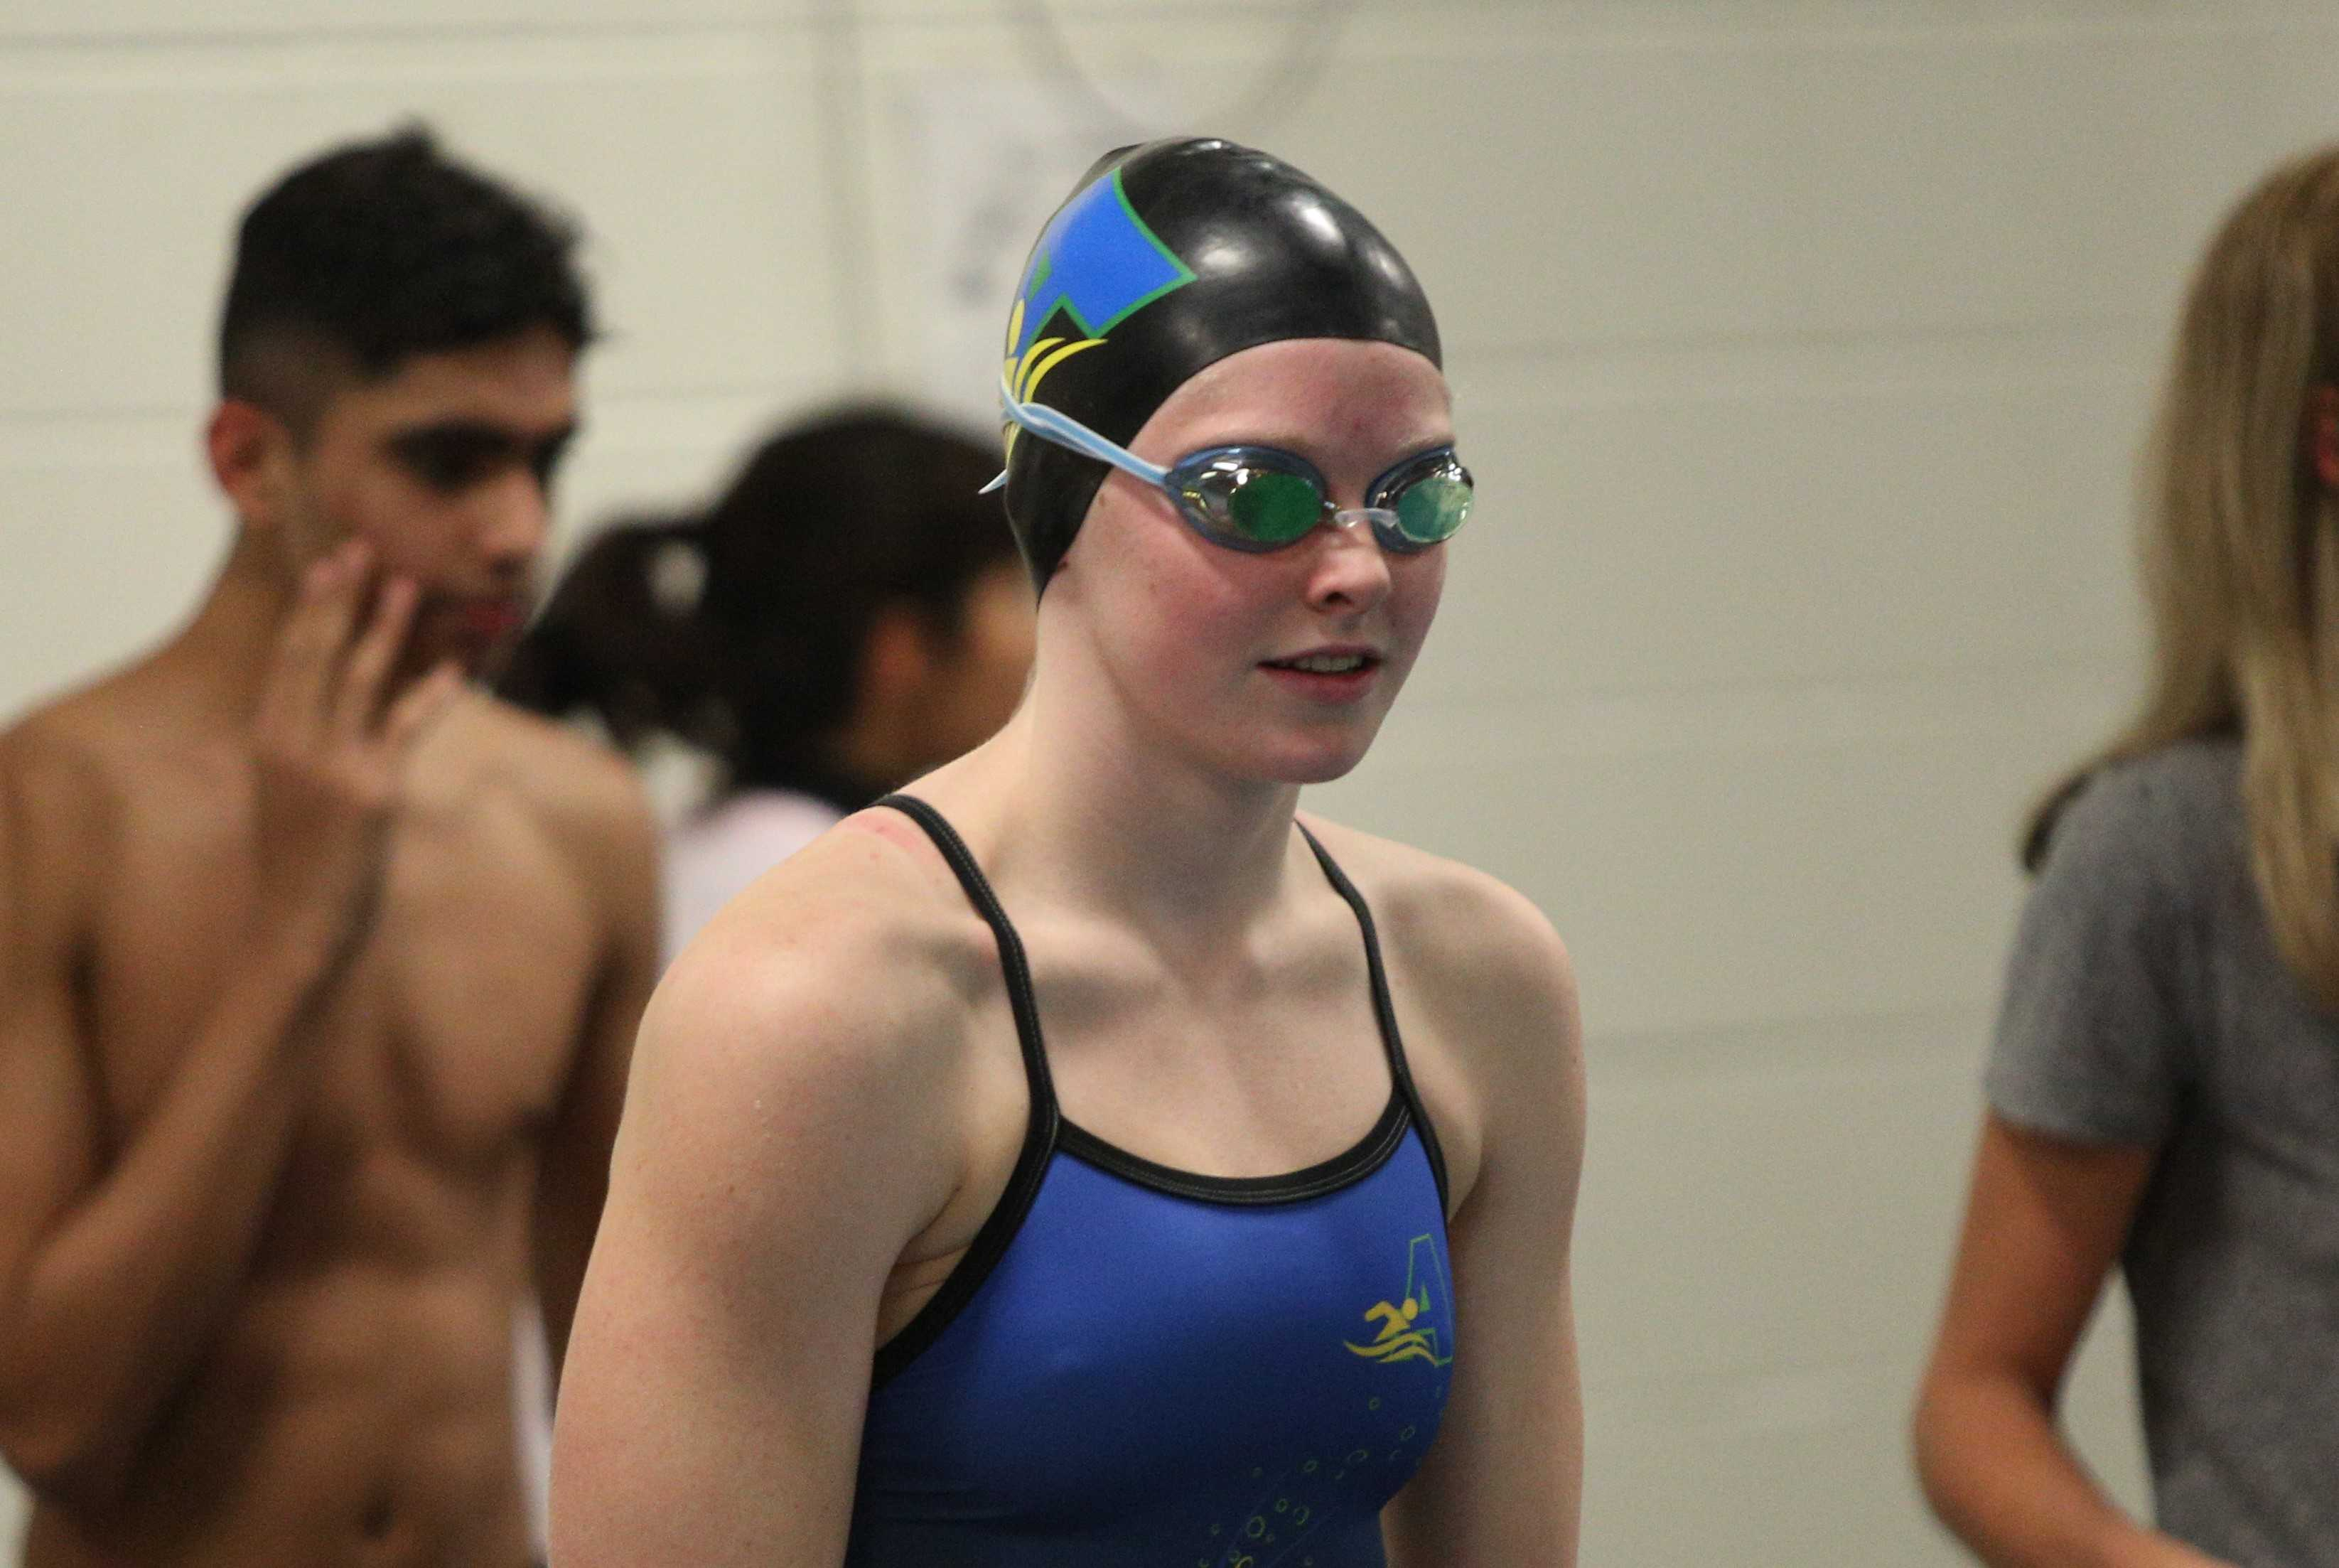 Aloha's Kaitlyn Dobler will pursue the national high school record in the 100 breaststroke this season. (Jim Newton Photography)